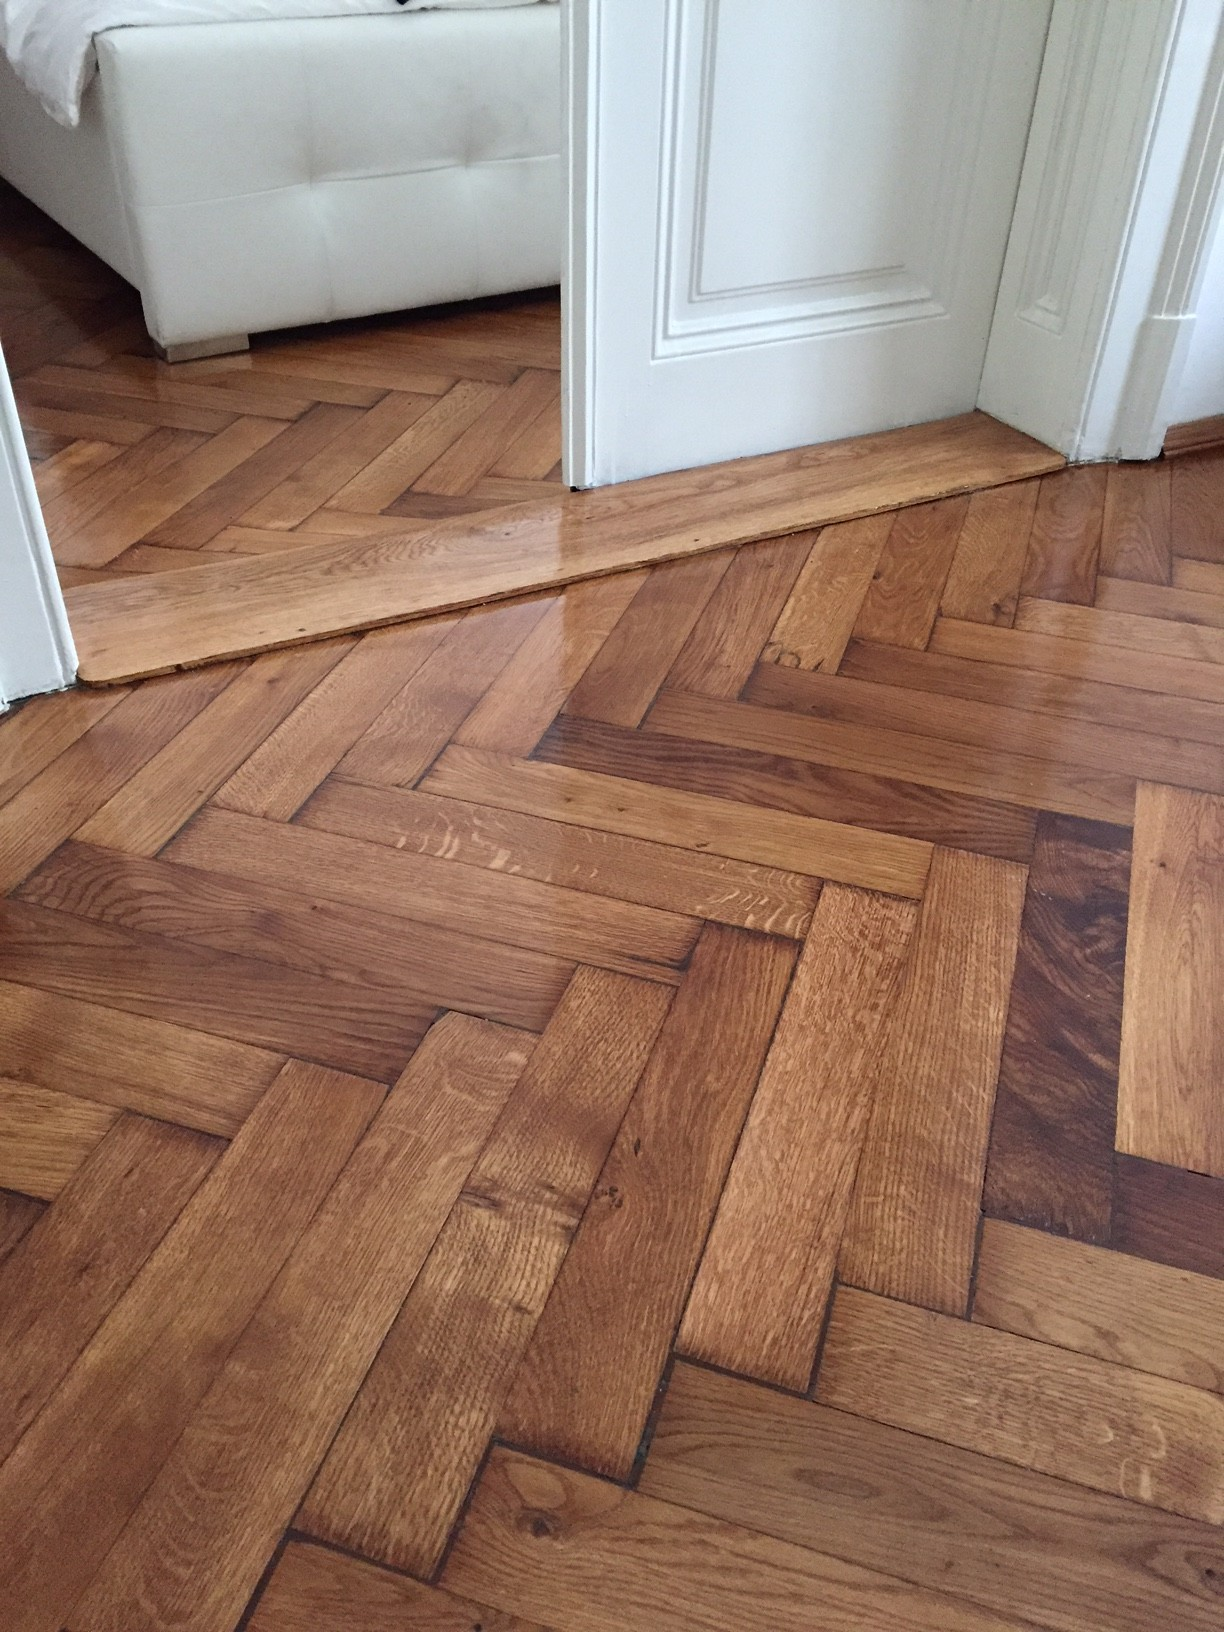 Hardwood Floors To Last For The Ages Builddirect Blog